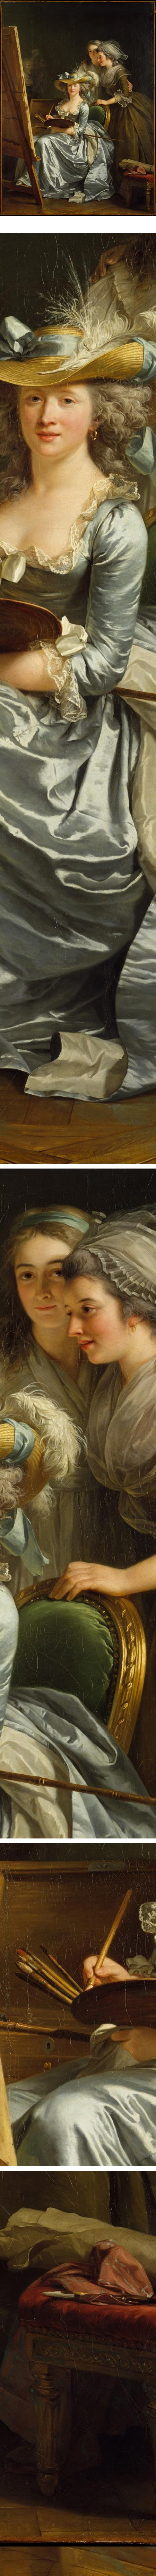 Self-Portrait with Two Pupils, Adelaide Labille-Guiard